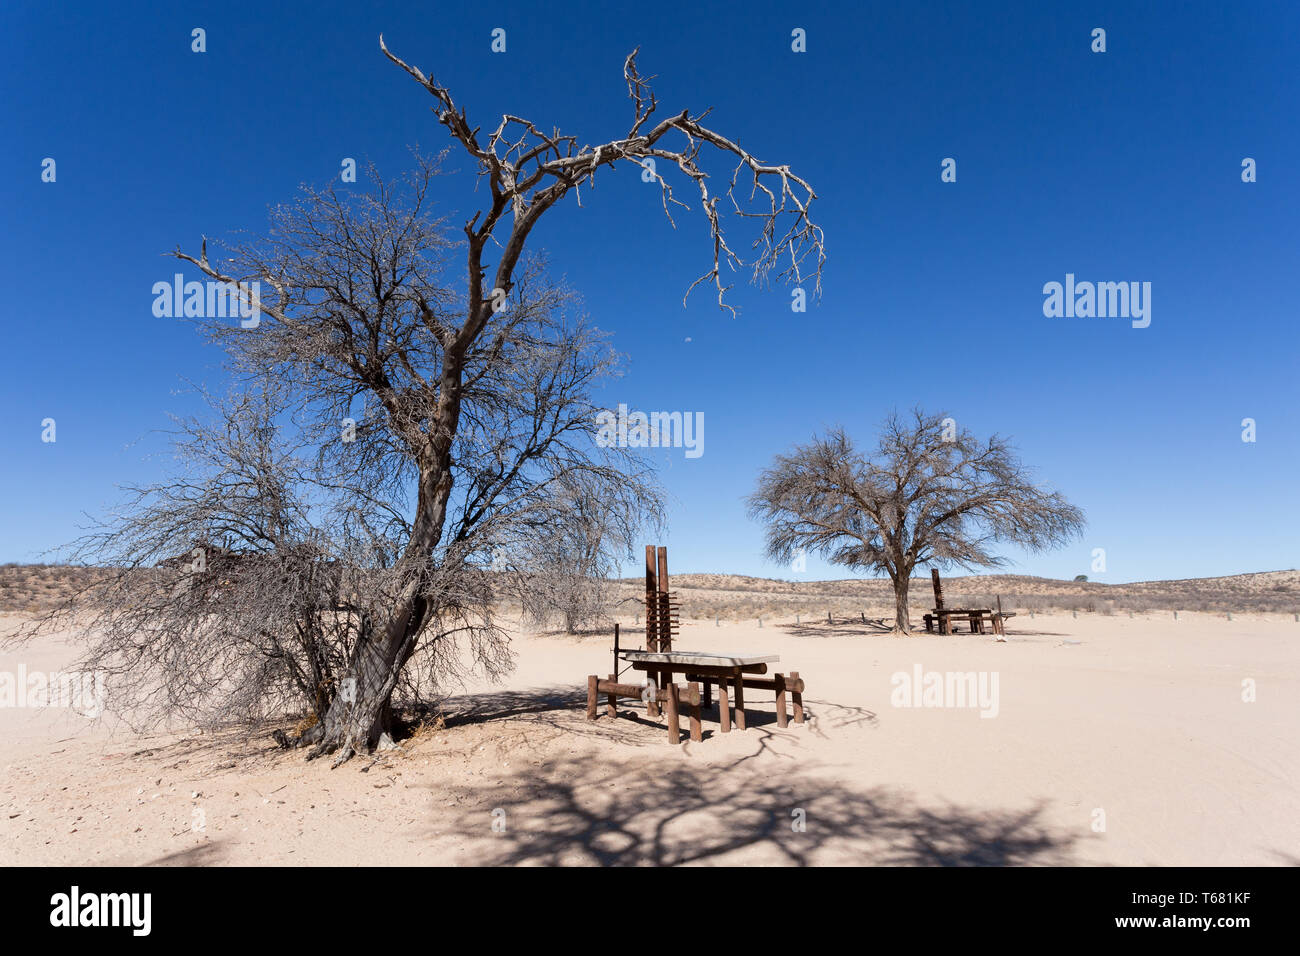 stopover rest place in Kgalagadi transfontier park - Stock Image